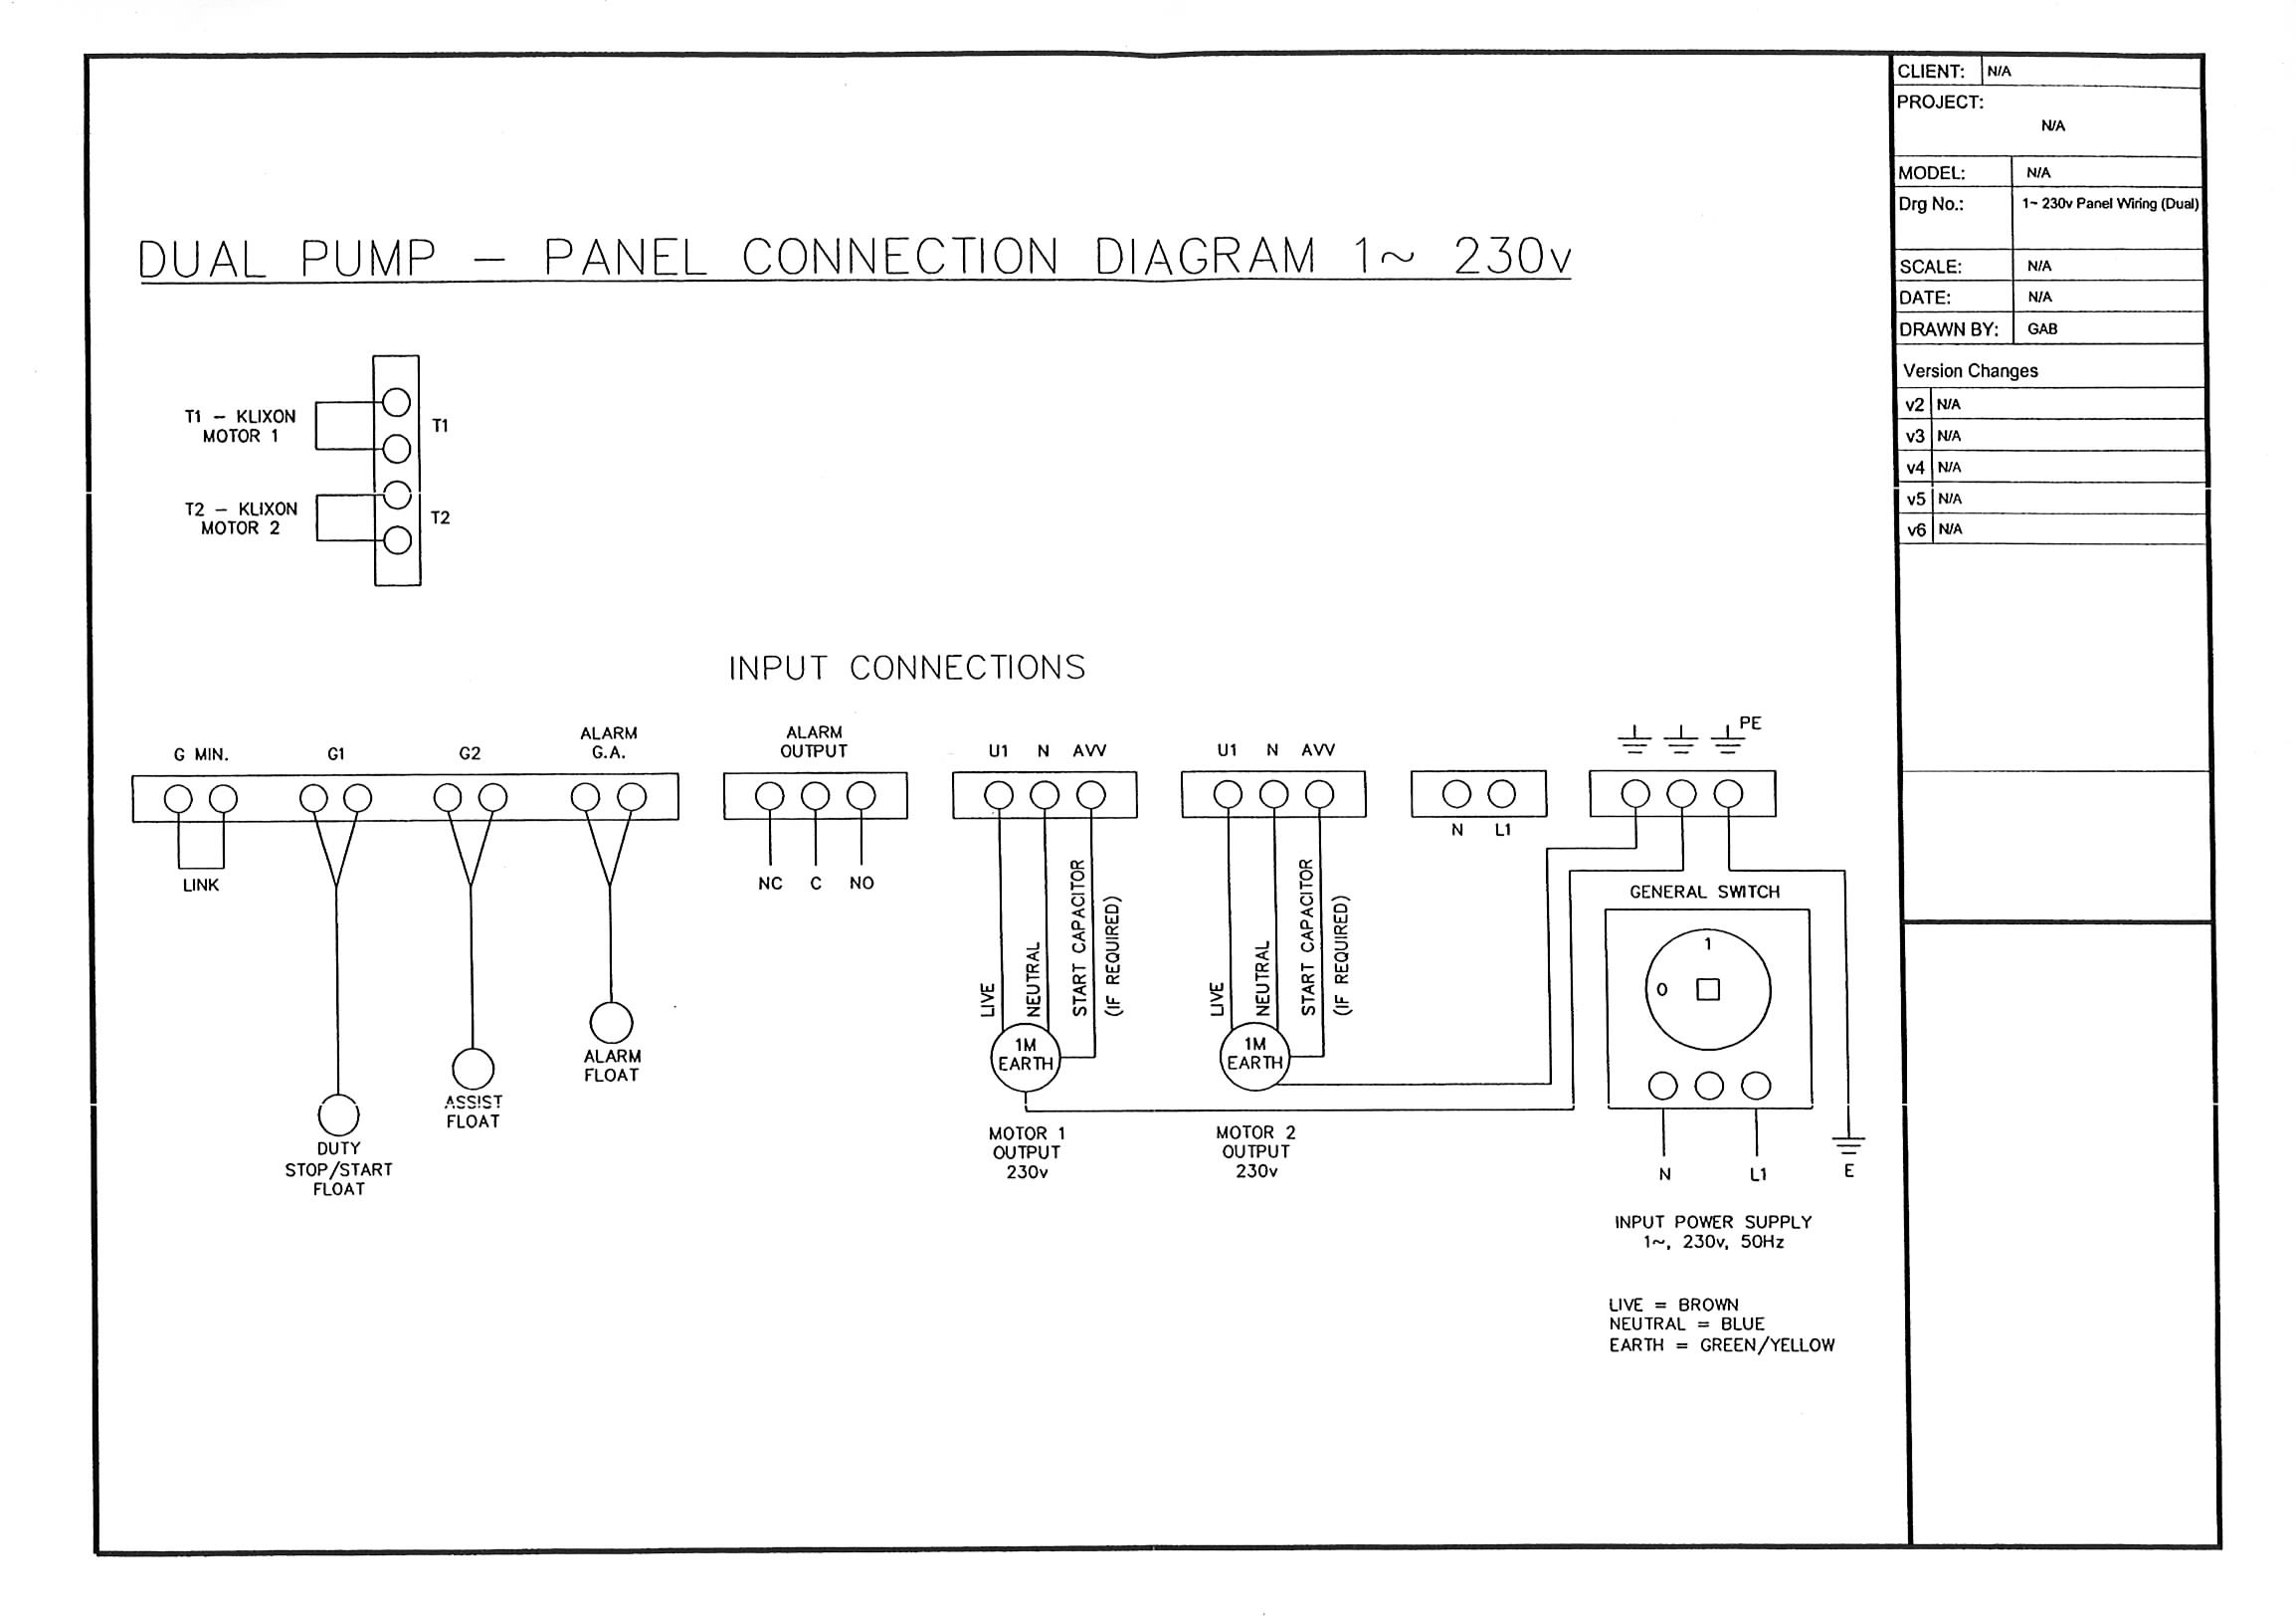 electrical control panel wiring drawings electrical understanding electrical wiring diagrams uk images on electrical control panel wiring drawings